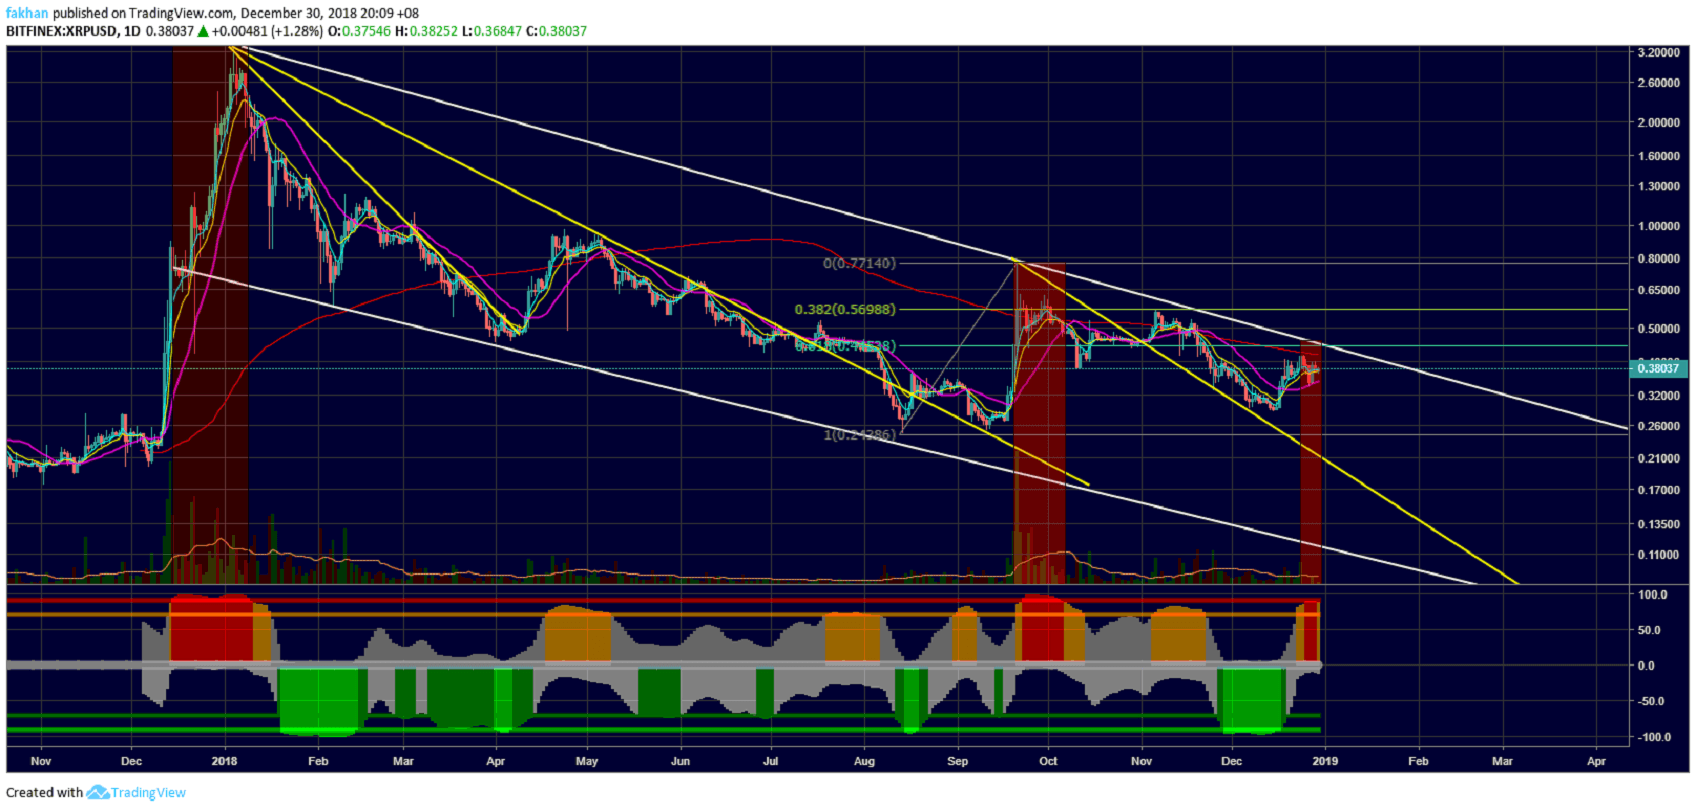 Ripple (XRP) Has Topped Out Again, Retest Of Yearly Low Expected